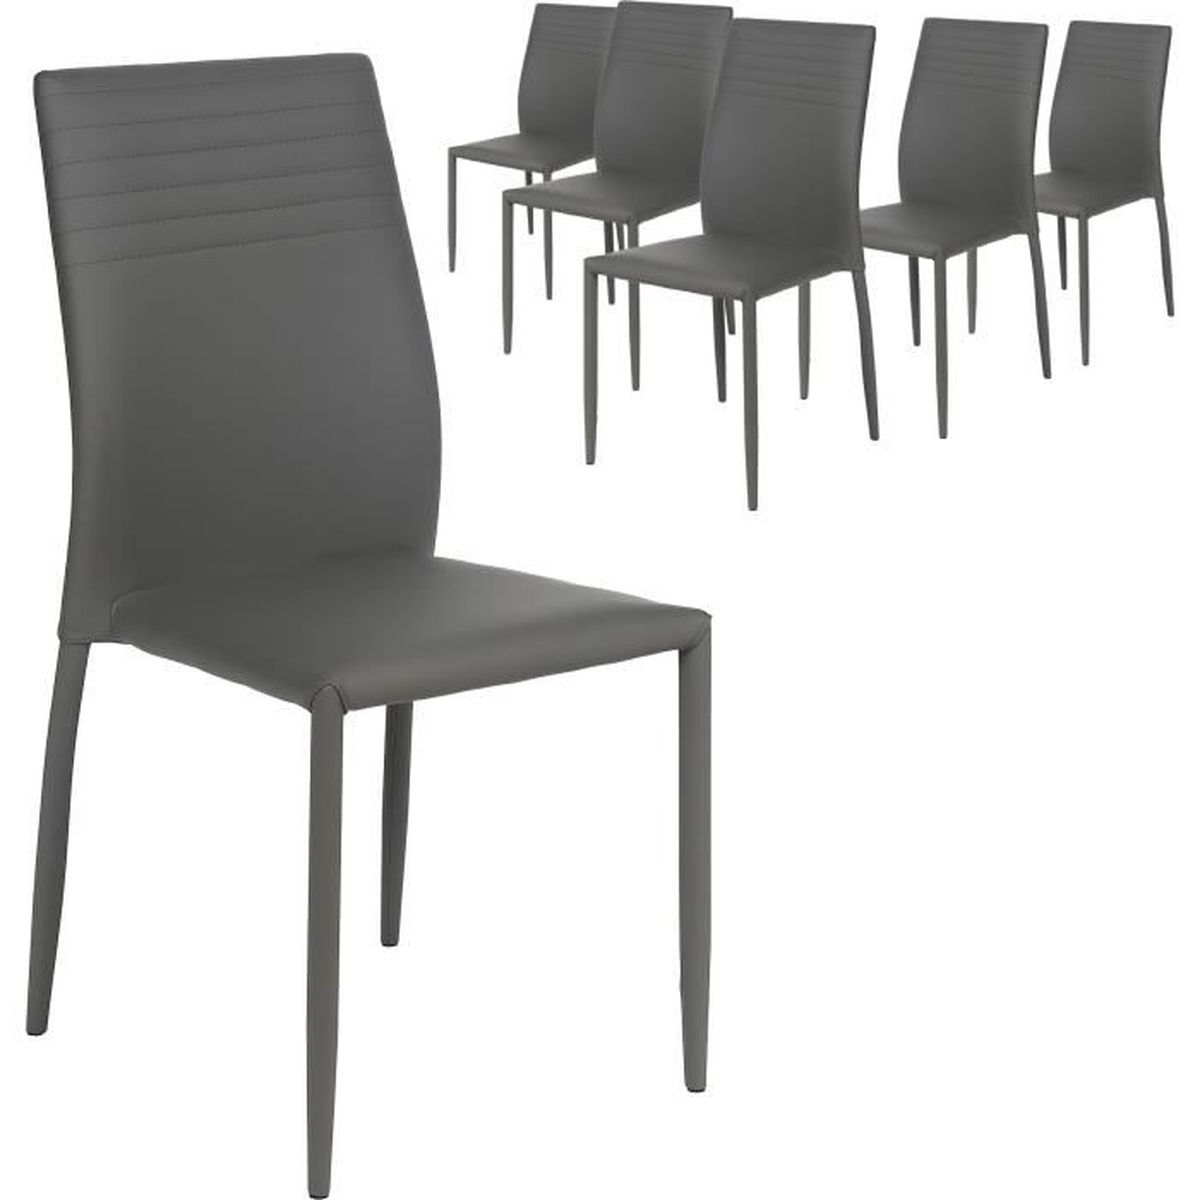 Lot de 6 chaises empilables en coloris gris gris achat for Chaises empilables